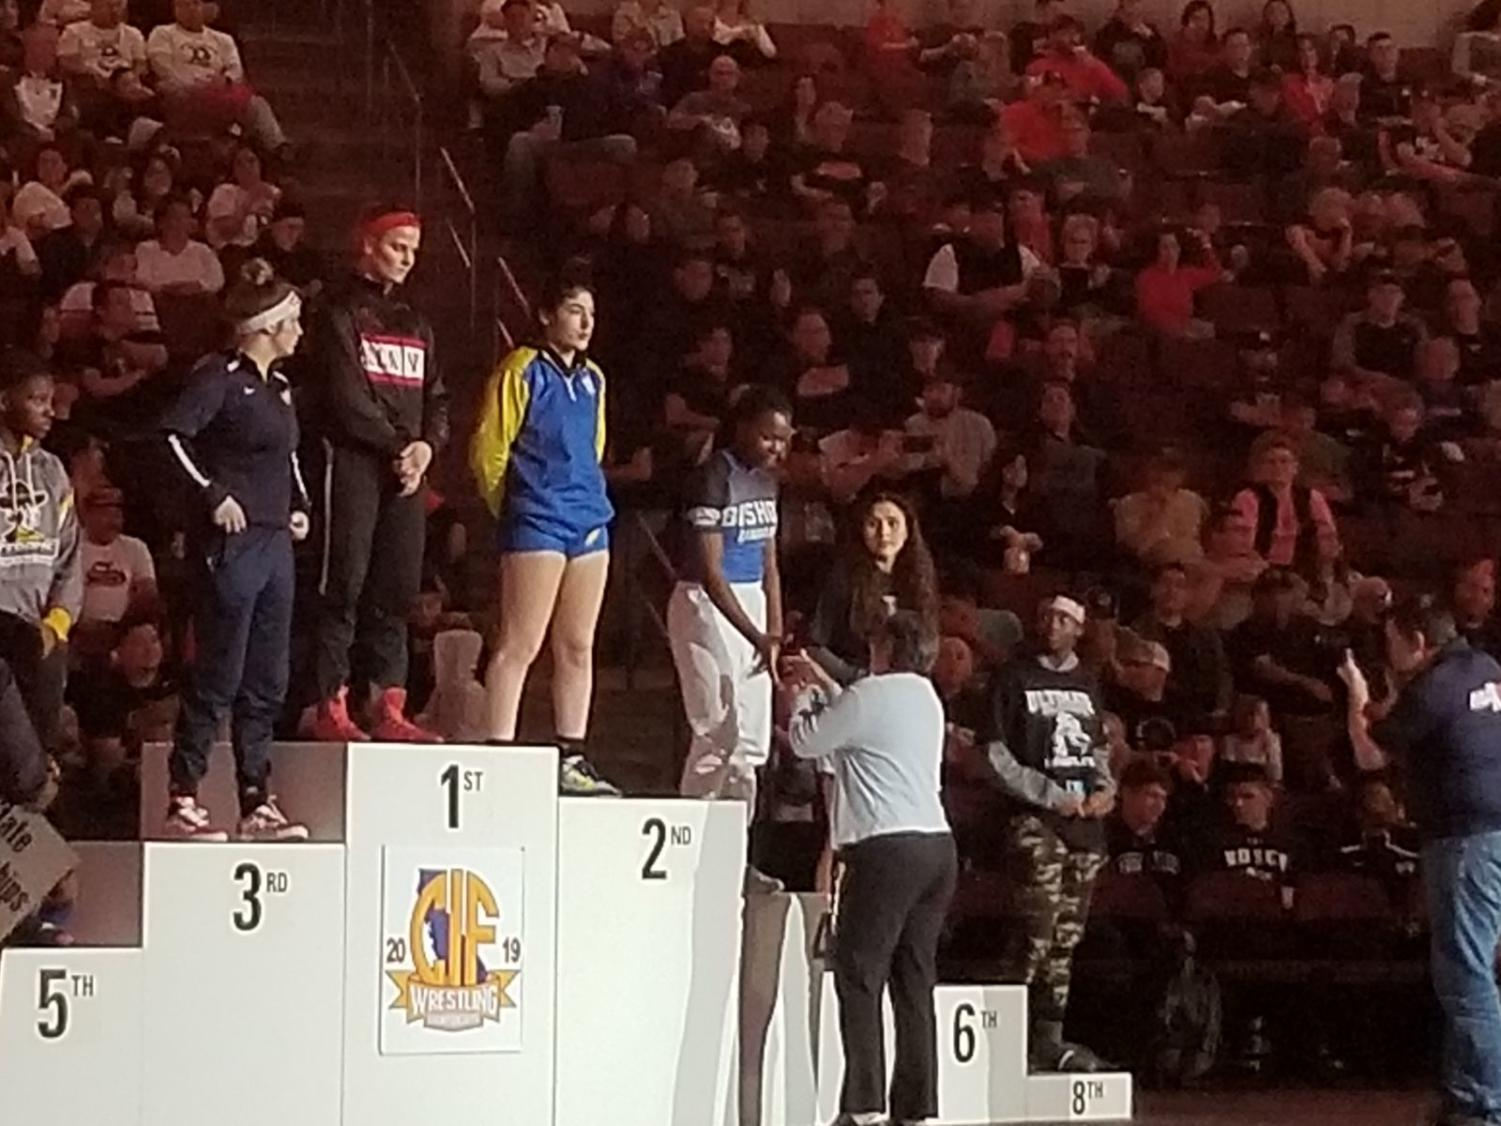 Tia receiving her 4th place medal.  Photo provided by Celia Mayhugh